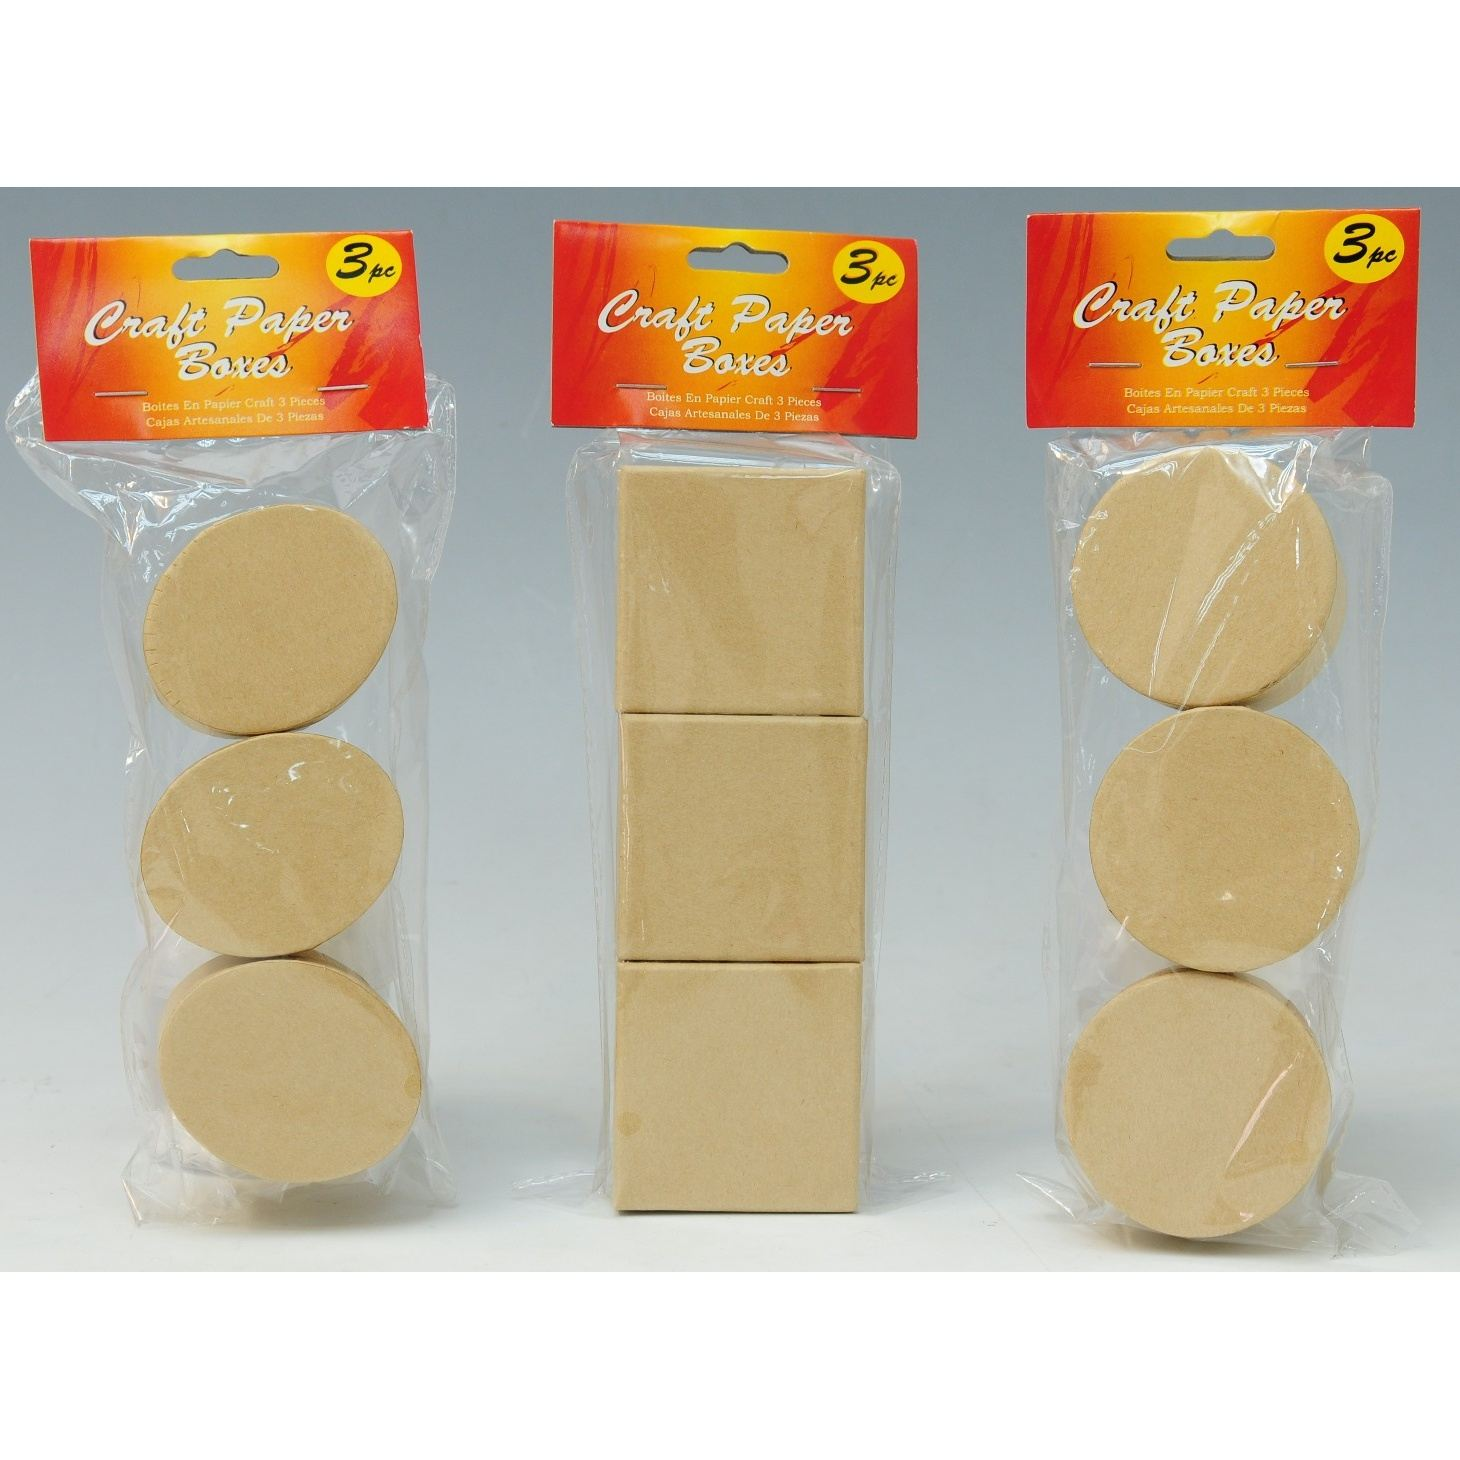 PACK-OF-3-MINI-PAPER-MACHE-CARDBOARD-CRAFT-GIFT-BOXES-ASSORTED-WORK-OCCASIONAL